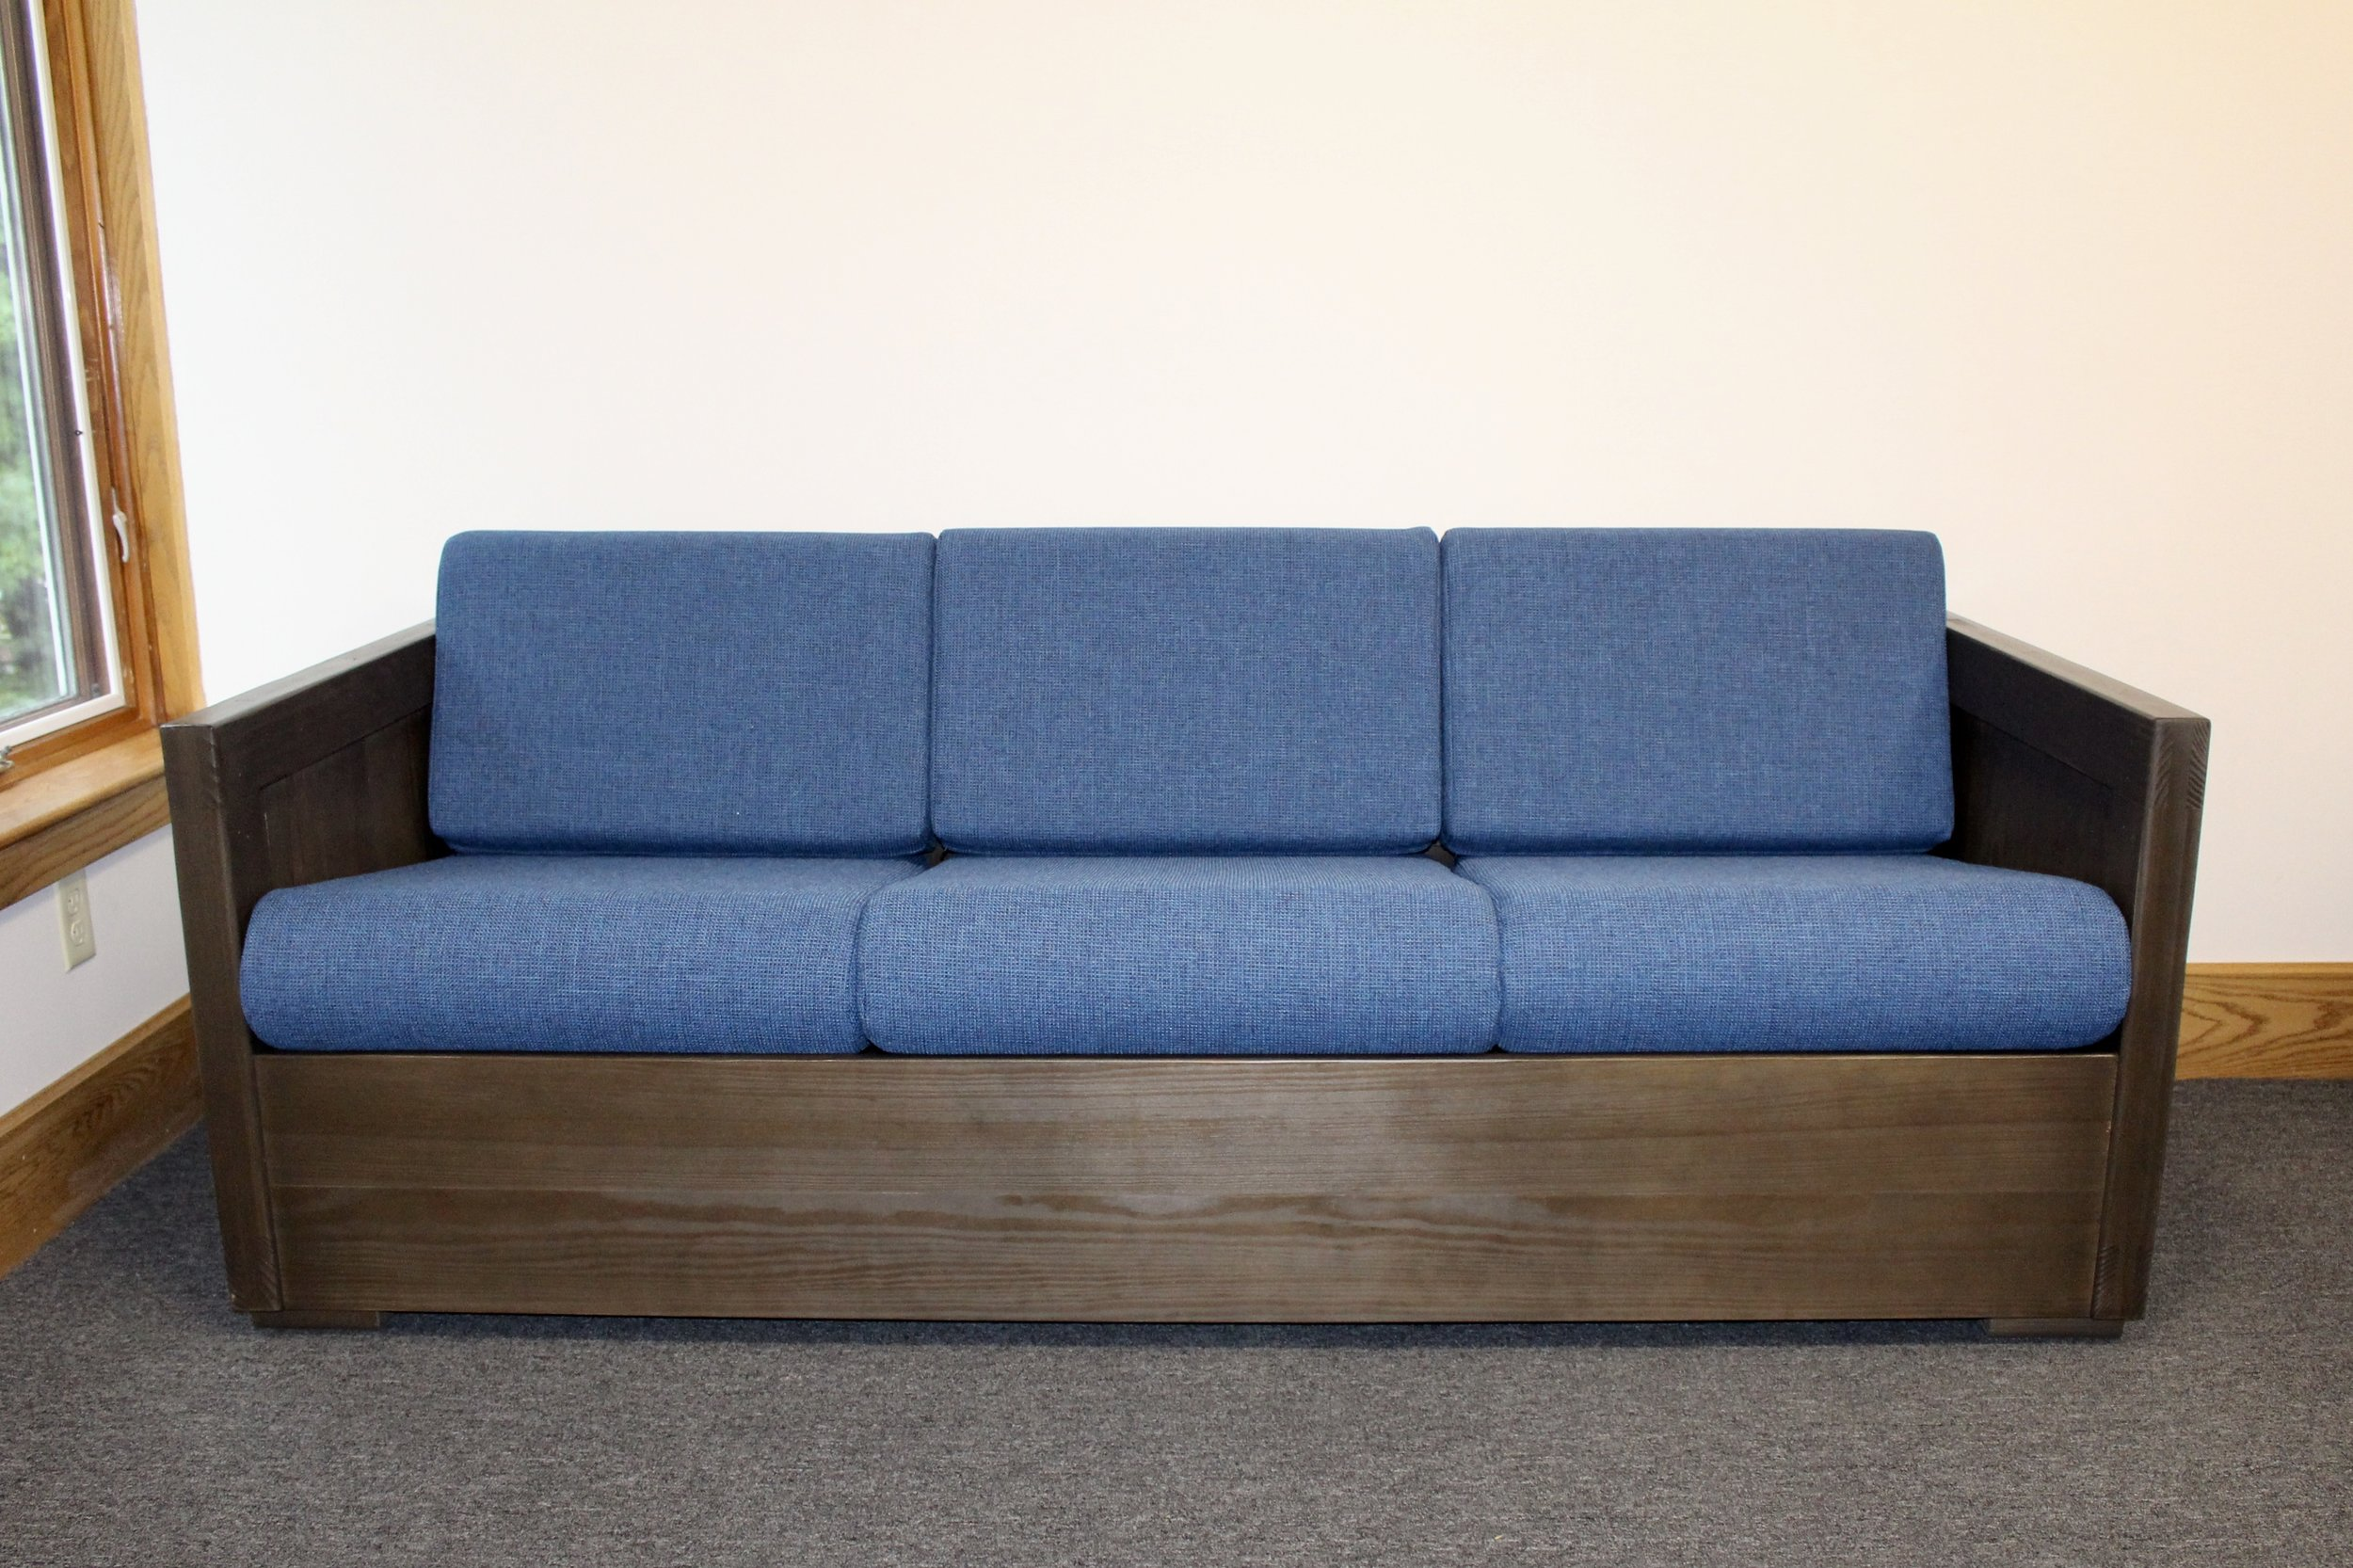 Classic sofa (Contract premium finish $730) in espresso with sherpa navy fabric cushions For Behavioral Health and Education Agency ( see project )